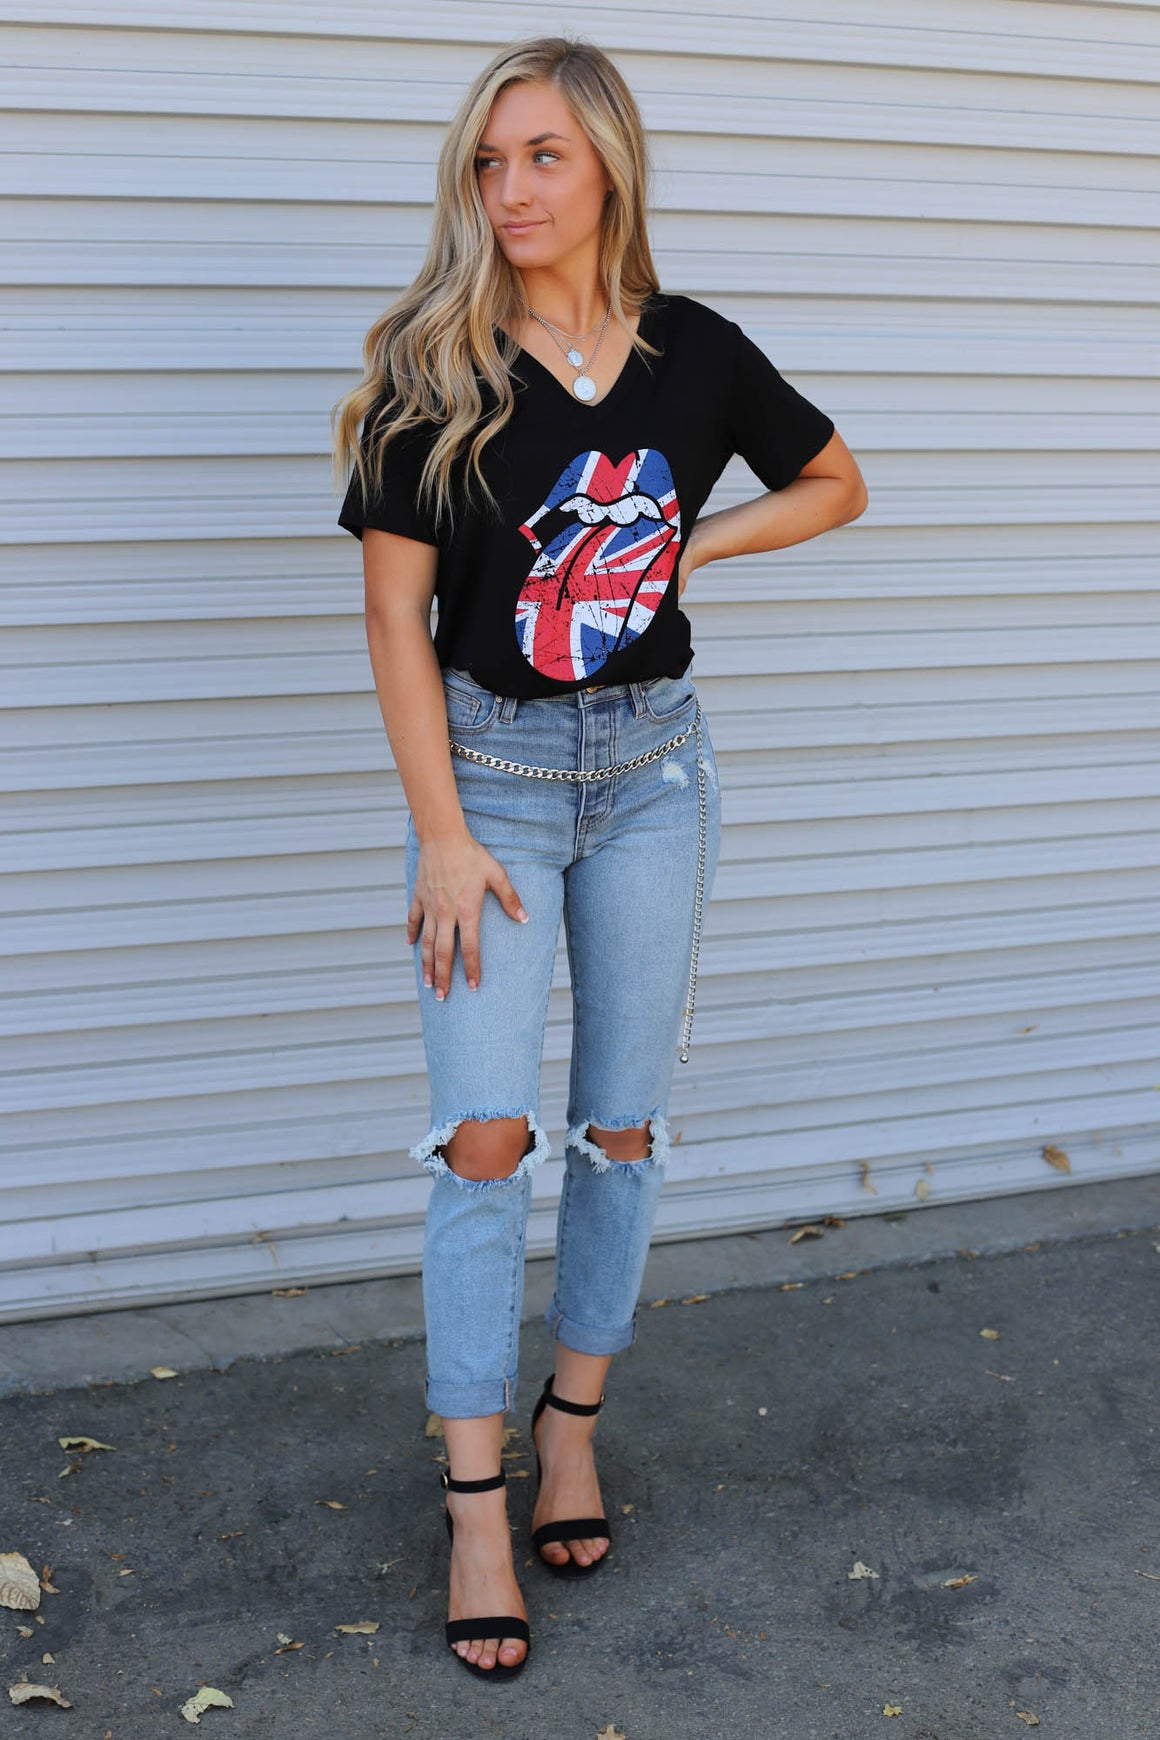 Union Jack Graphic Top - ShopSpoiled